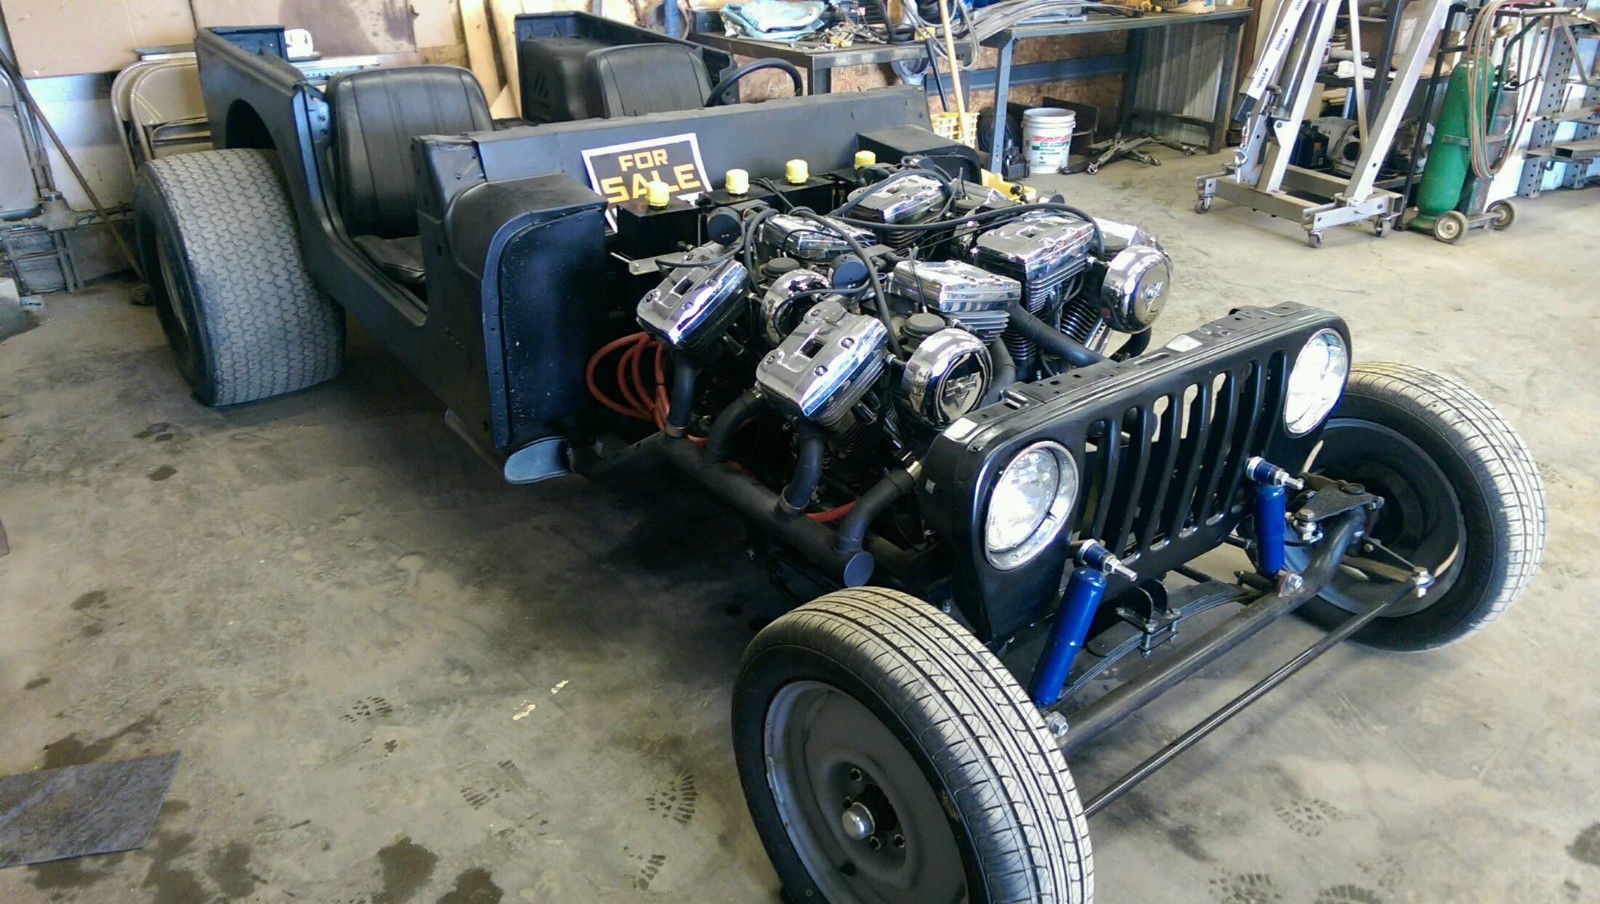 Jeep With Four Harley Davidson Evolution V Twin Engines 01 Engine A Diagram Of An